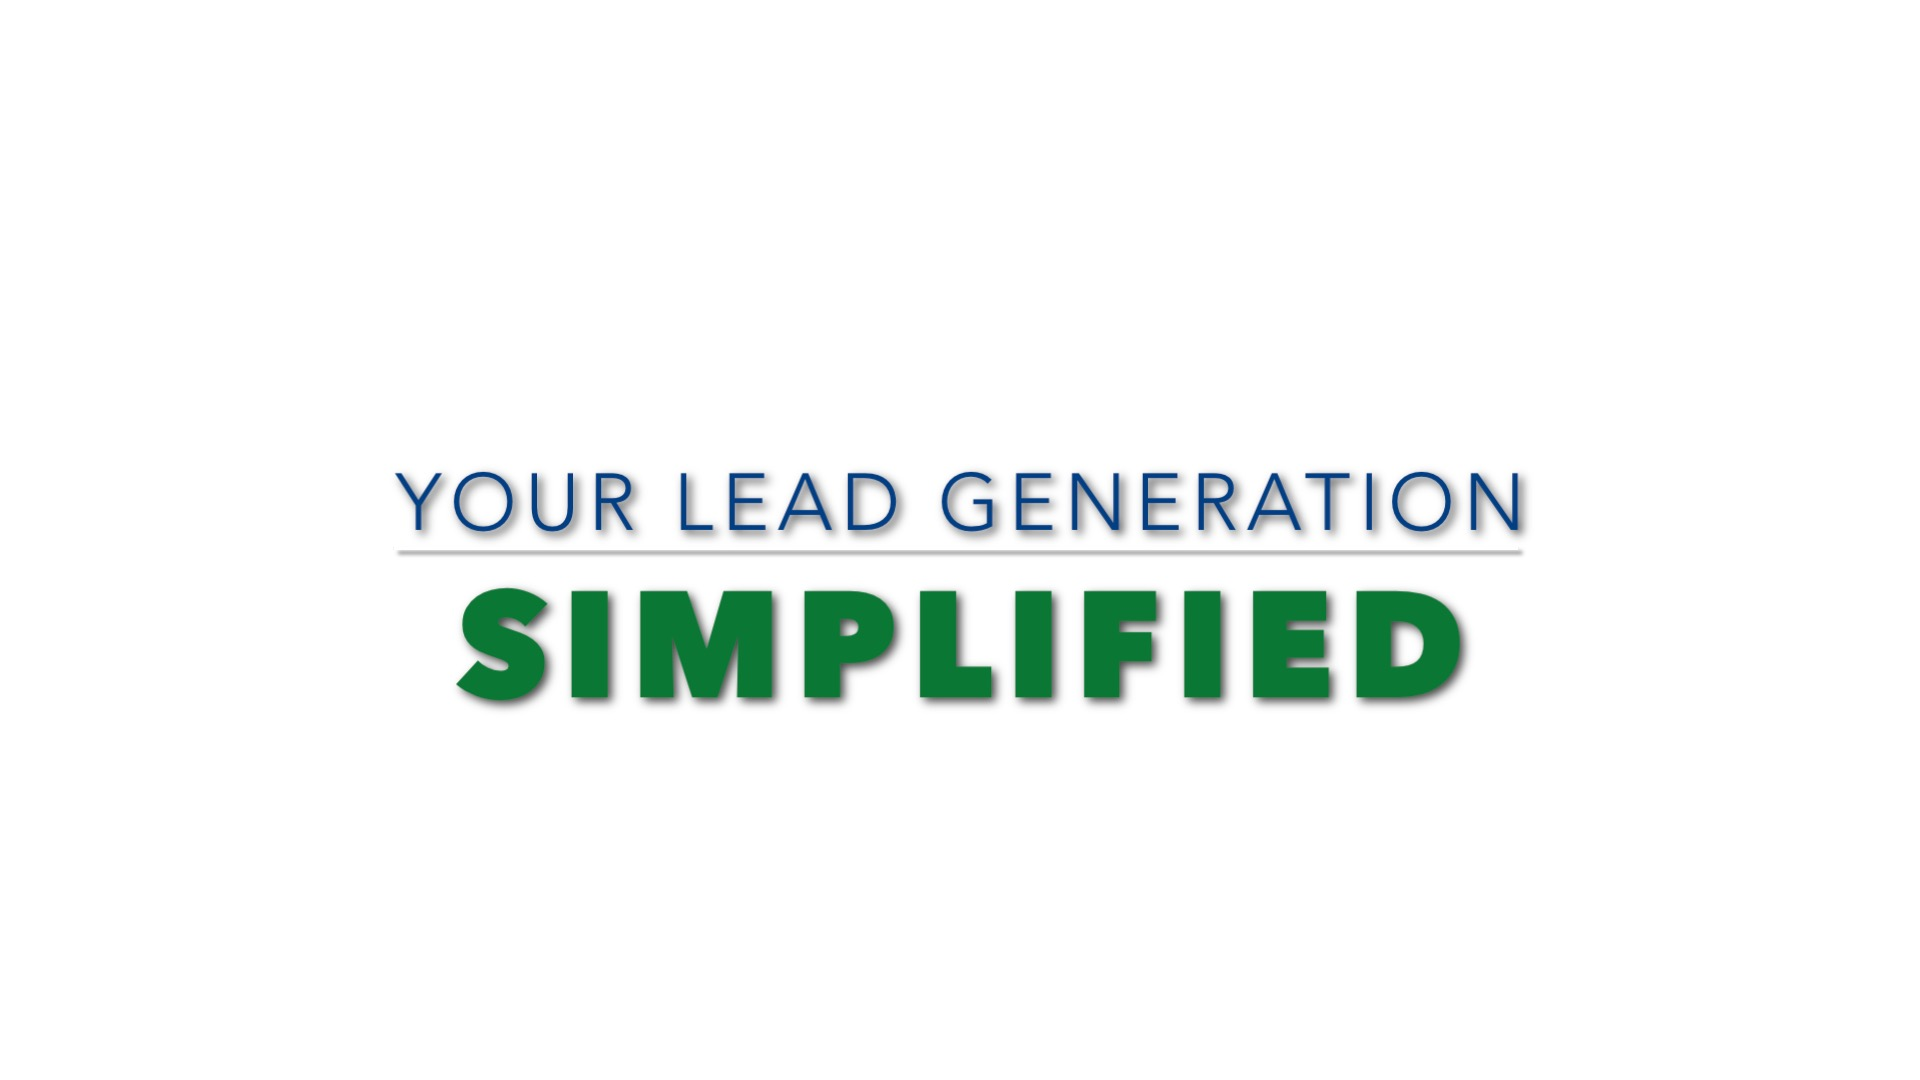 Your Lead Generation Simplified